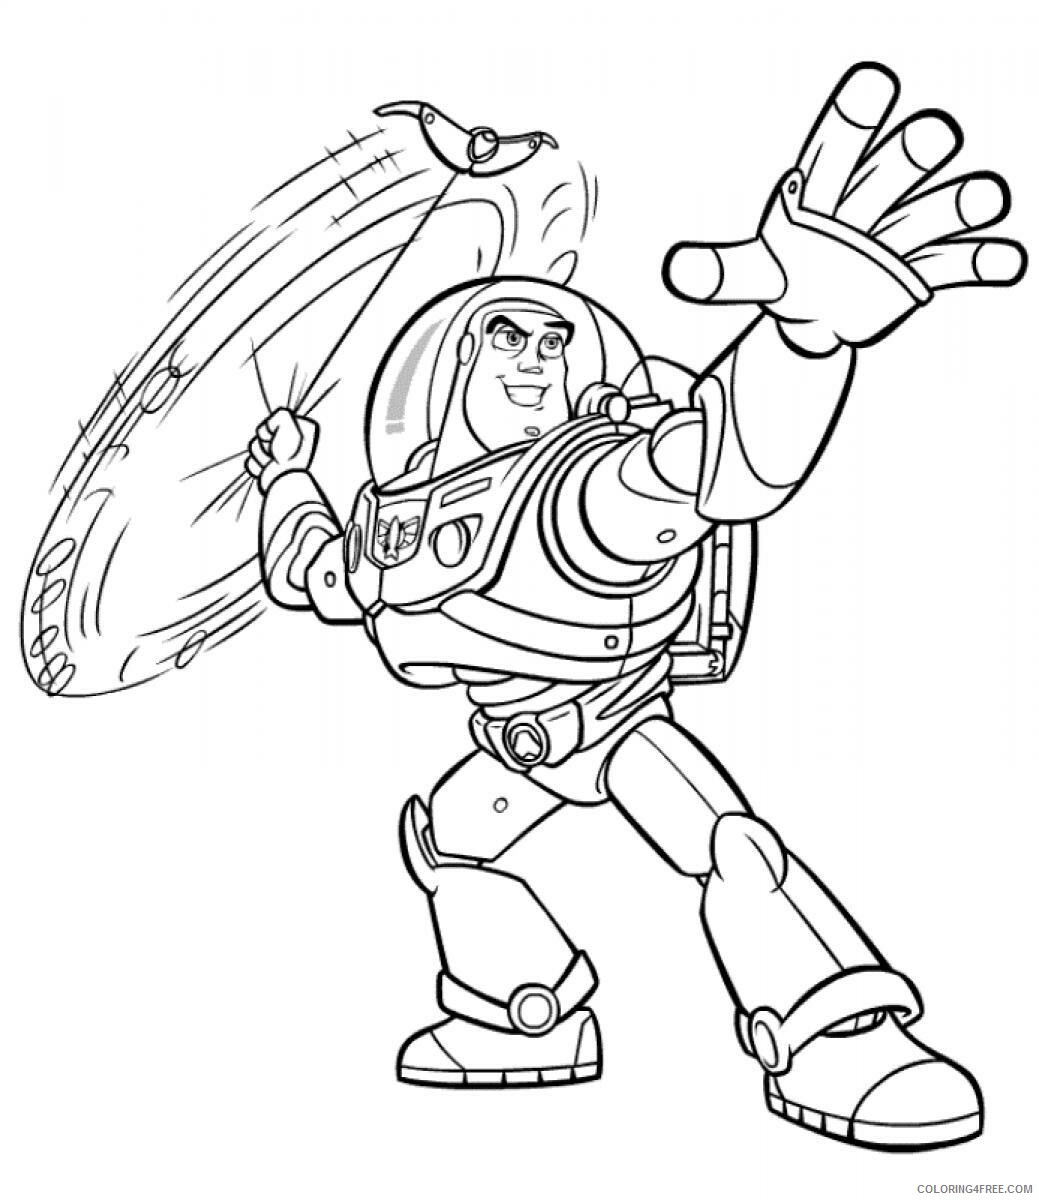 Buzz Lightyear Coloring Pages TV Film Buzz Lightyear Printable 2020 01751 Coloring4free